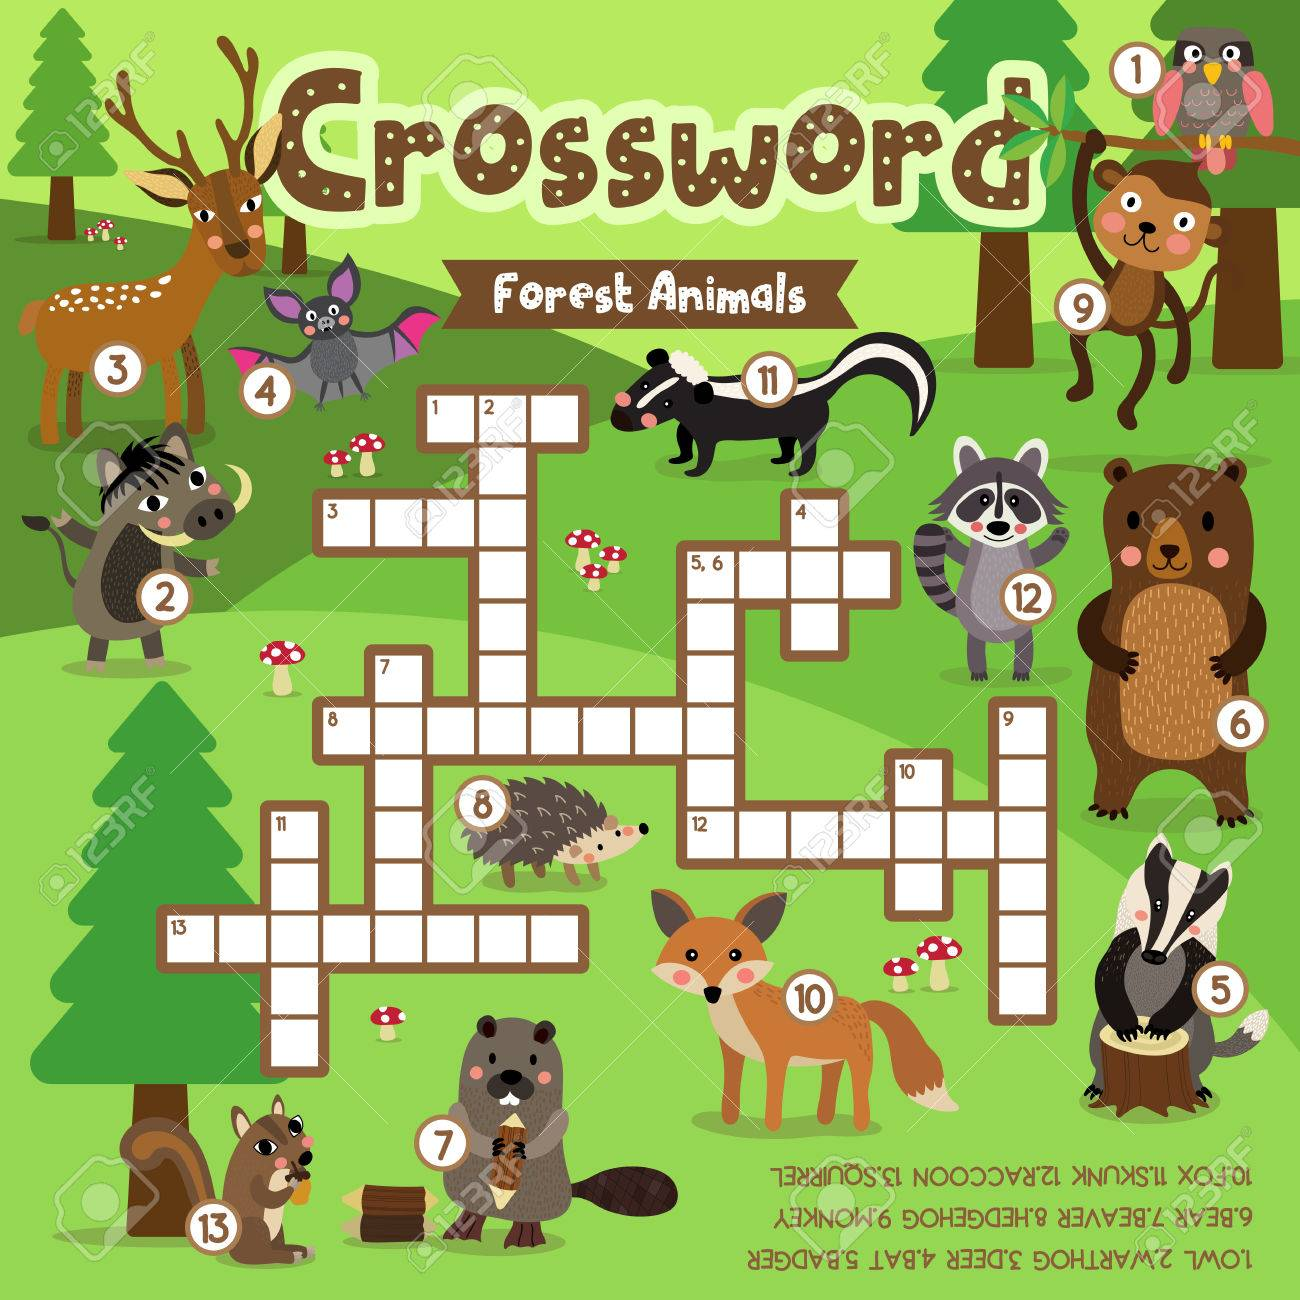 Wildlife Crossword Puzzle Printable Crossword Puzzle Gallery | Jymba ...